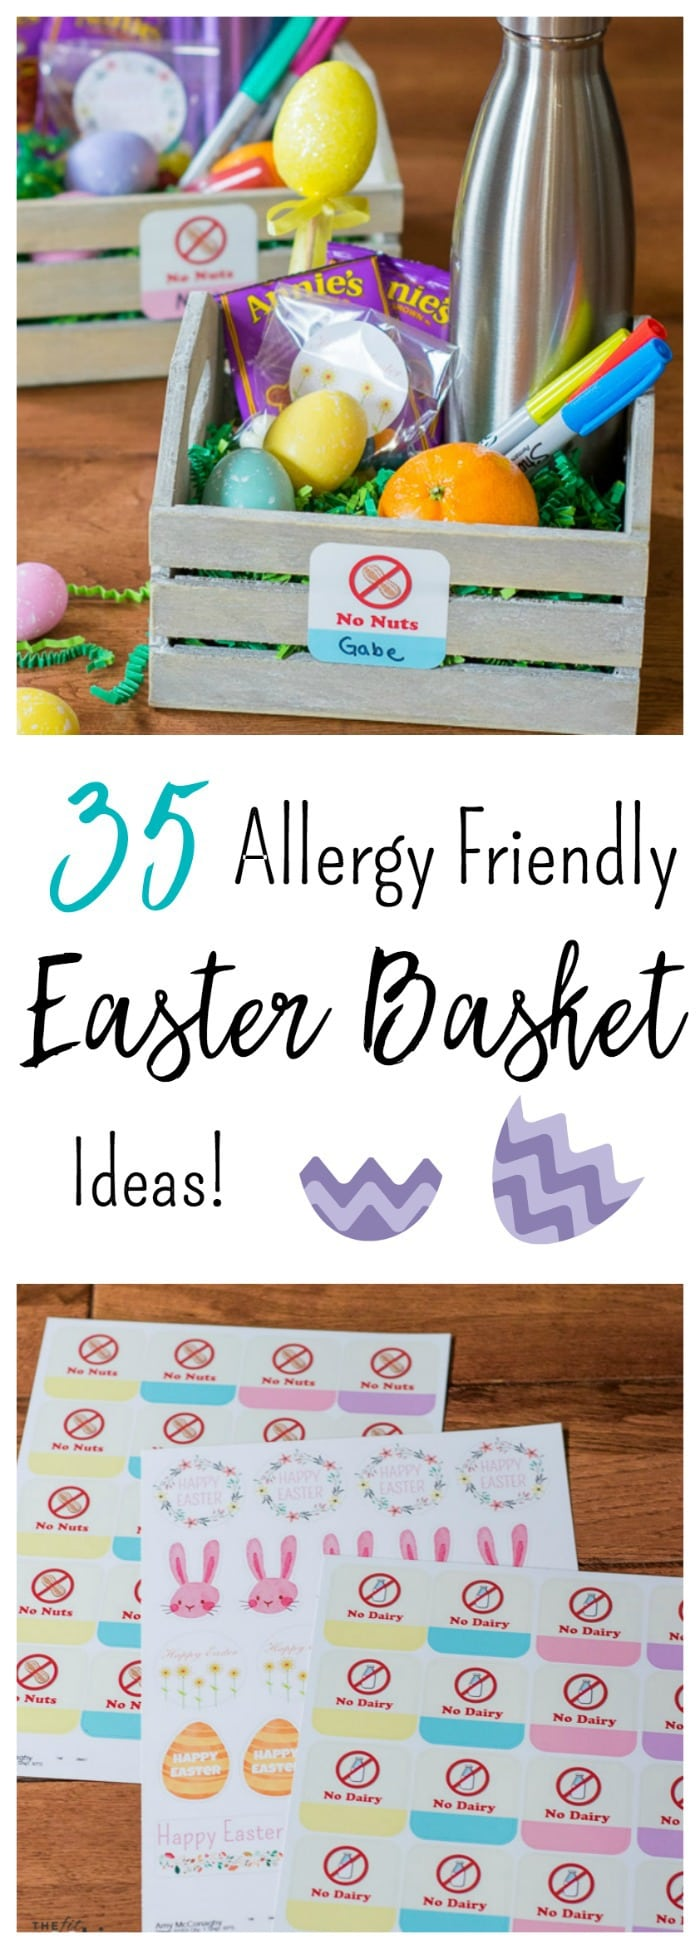 Looking for some creative Easter basket ideas for kids with food allergies? Here are 35 Easter basket ideas for kids of all ages, plus some cool food allergy labels from @StickerYou! - @TheFitCookie #sponsored by StickerYou